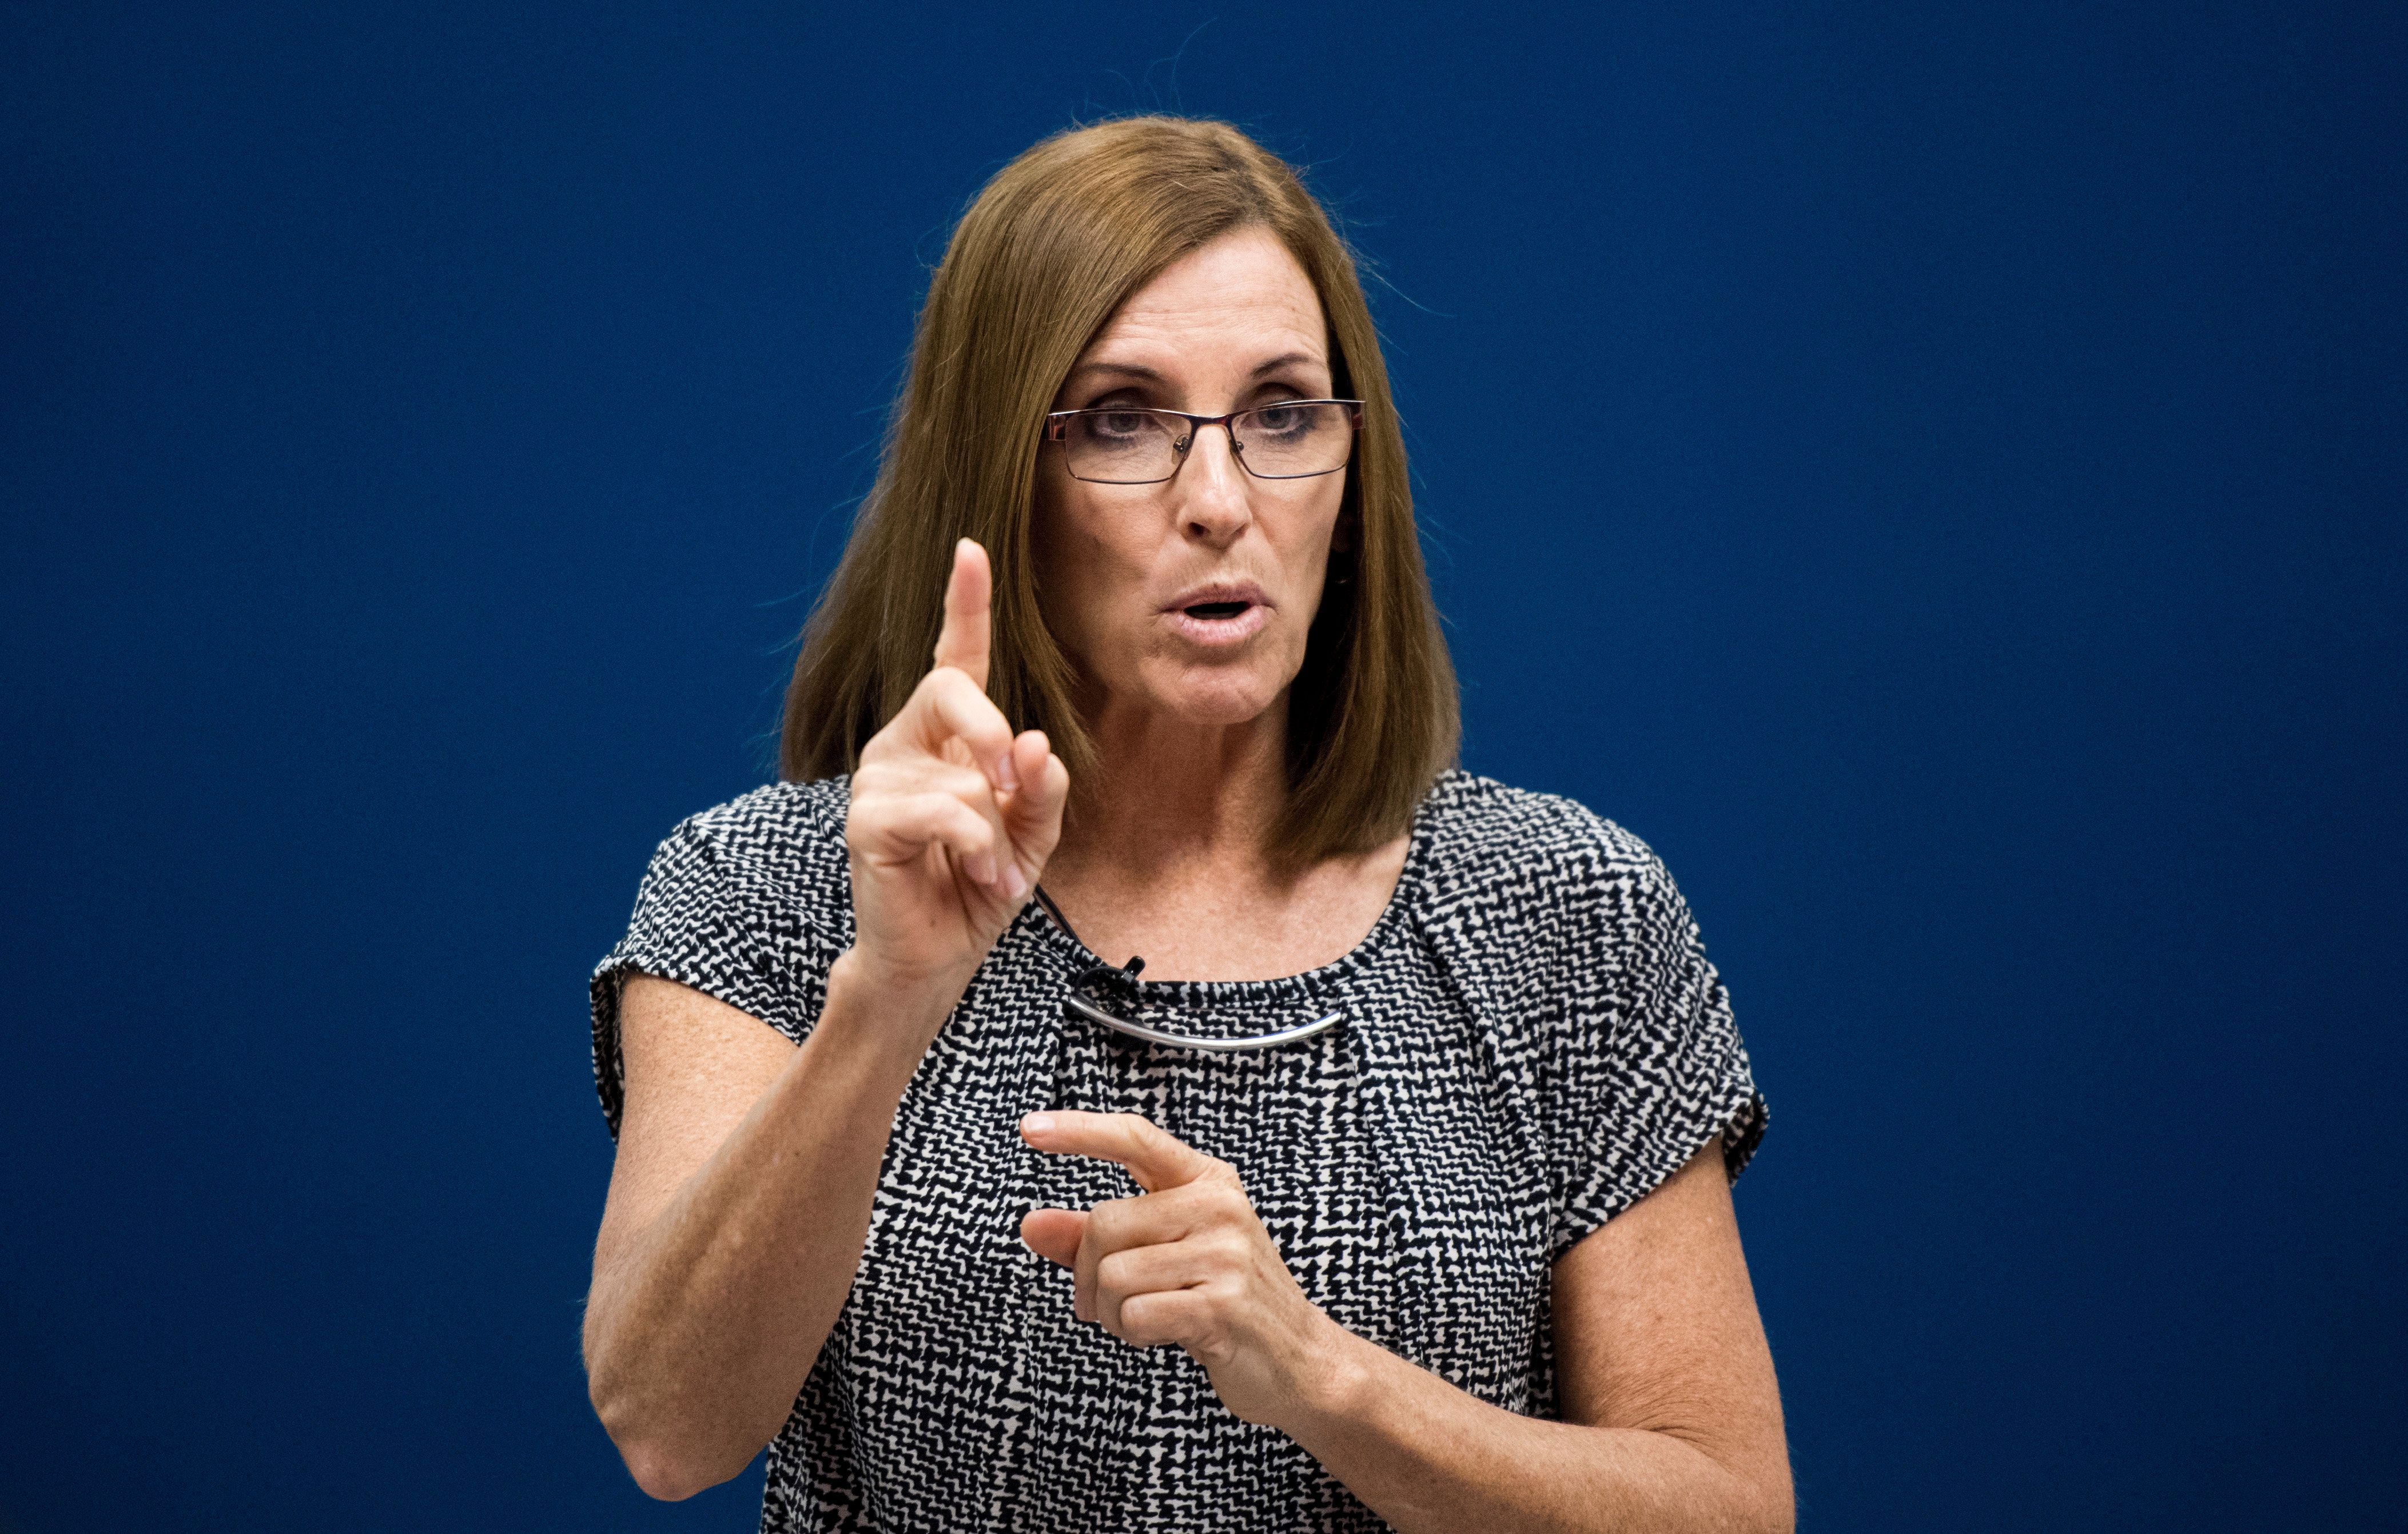 UNITED STATES - OCTOBER 24: GOP candidate for Senate Rep. Martha McSally, R-Ariz., speaks to students after touring the Universal Technical Institute in Avondale, Ariz., outside of Phoenix on Wednesday, Oct. 24, 2018. (Photo By Bill Clark/CQ Roll Call)